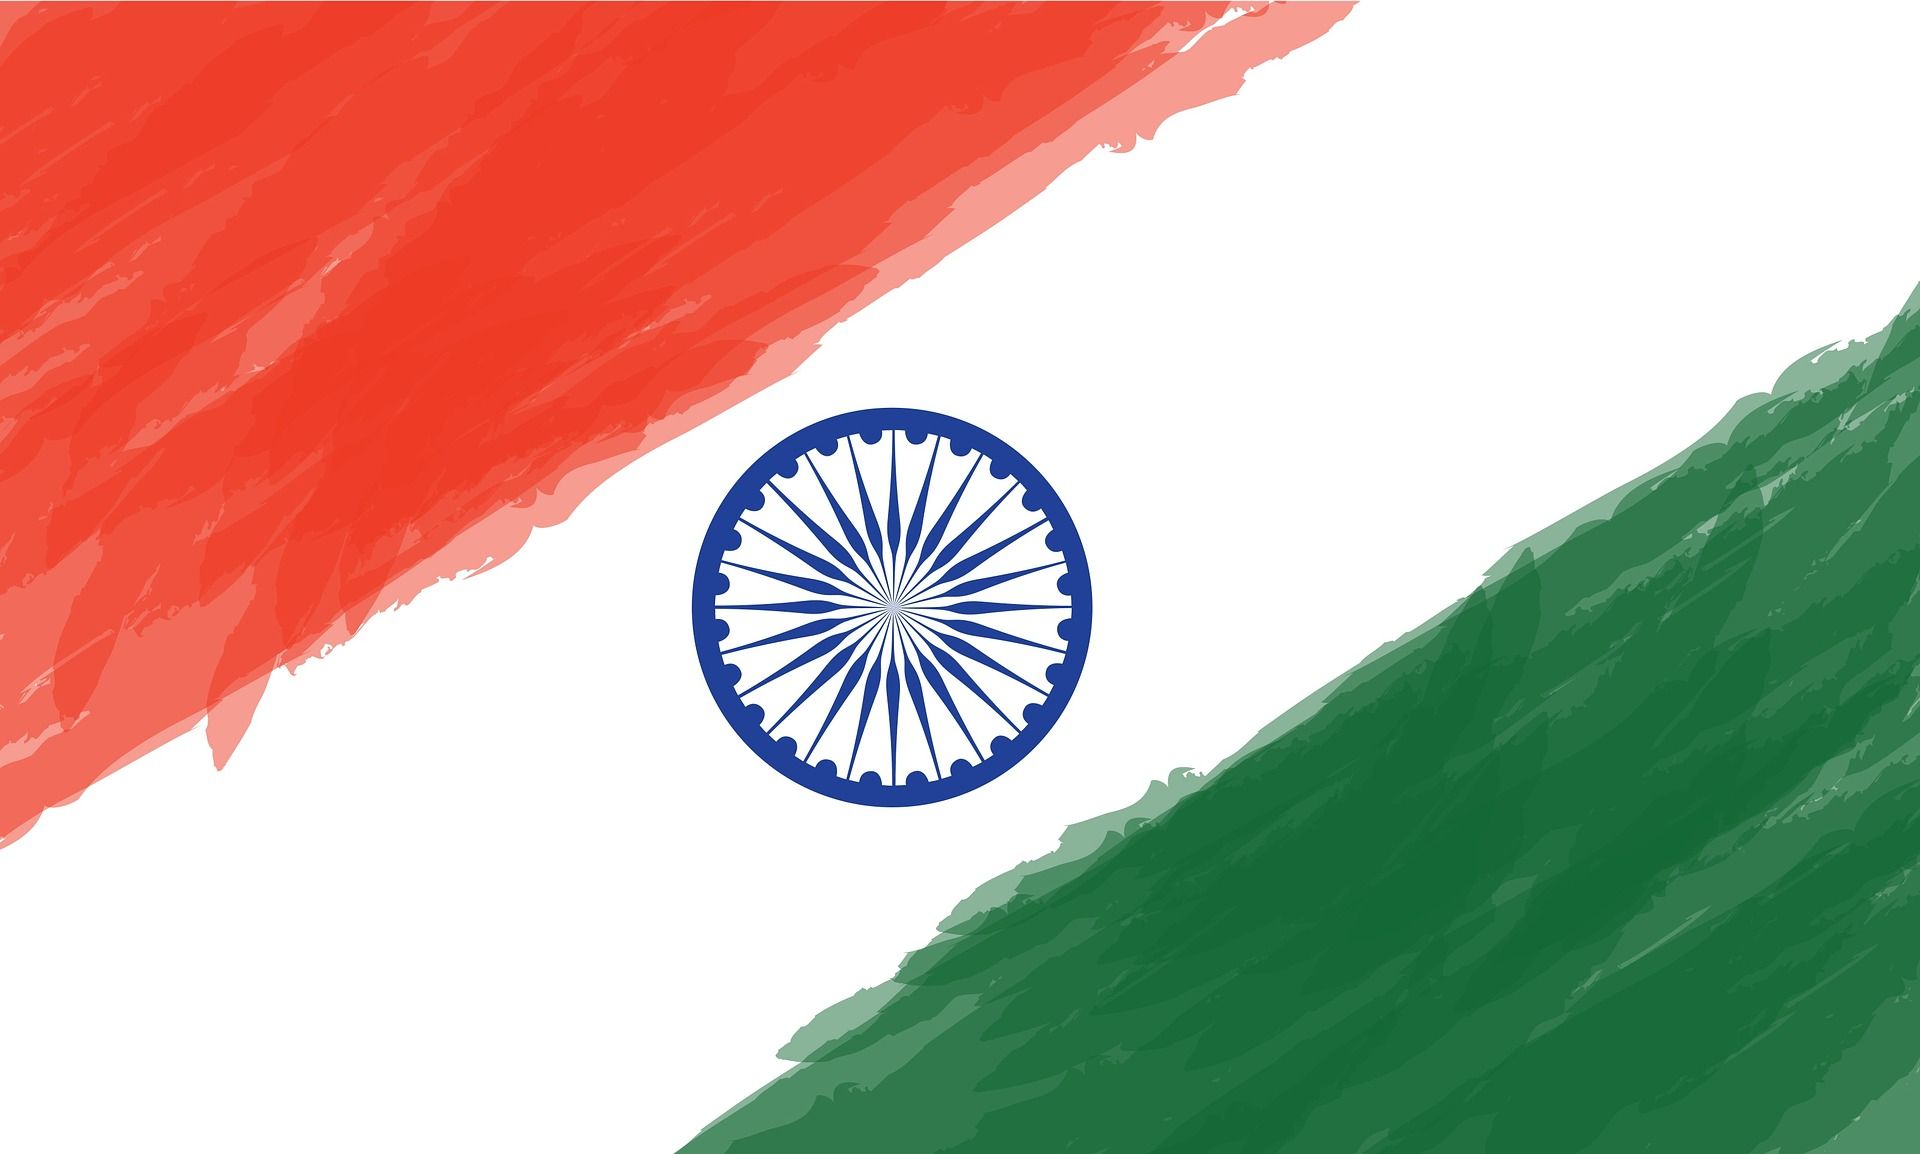 India Close to Finalizing New Cryptocurrency Regulations